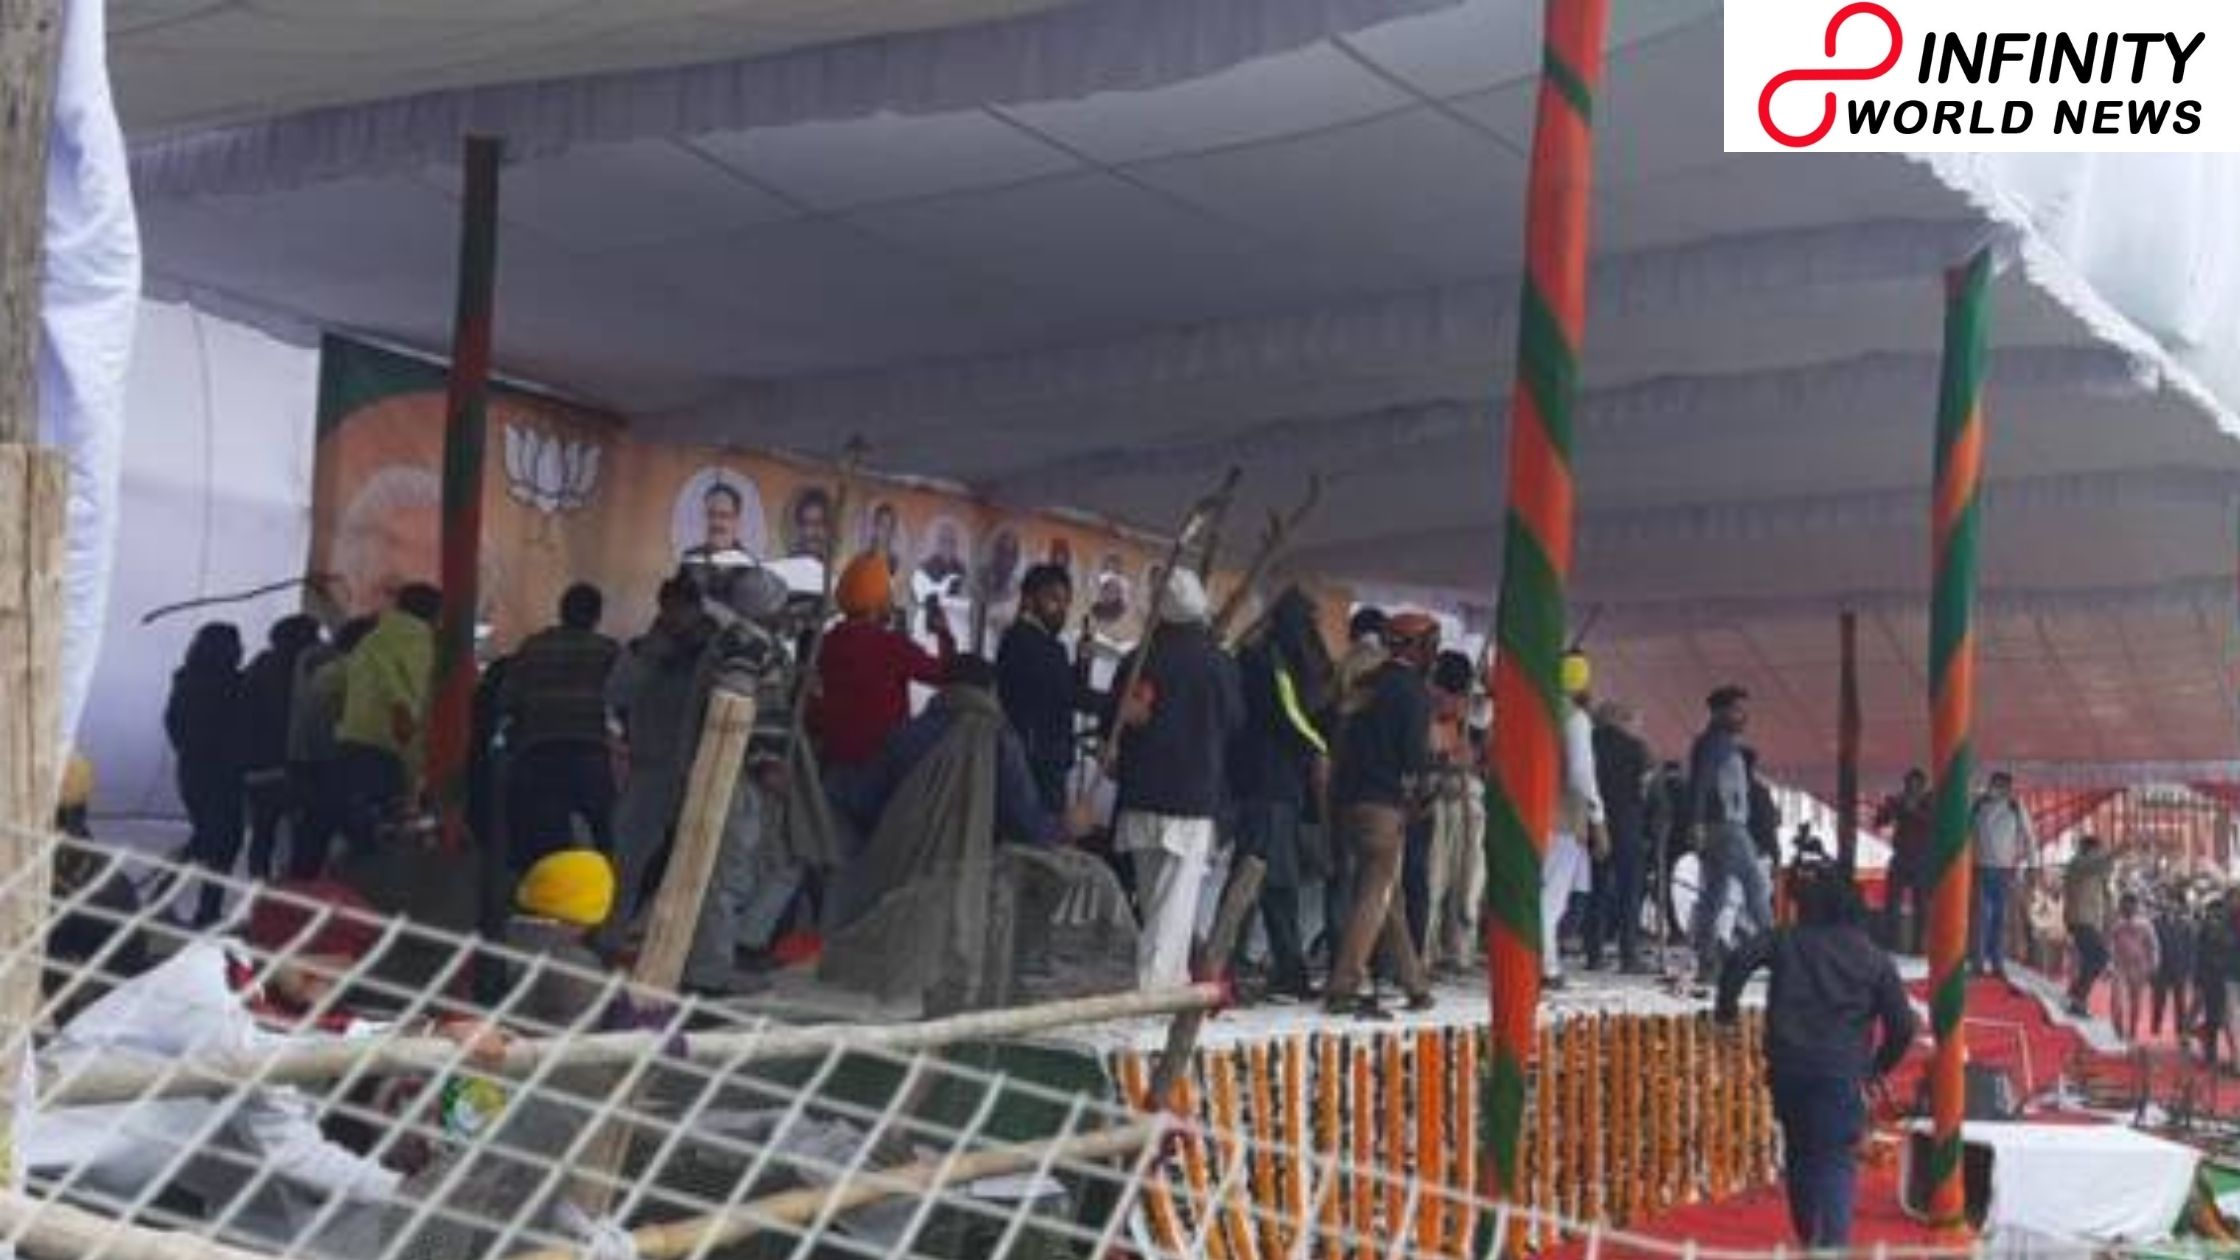 Haryana CM Cancels Farmers' Meet After Chaos By Protesters